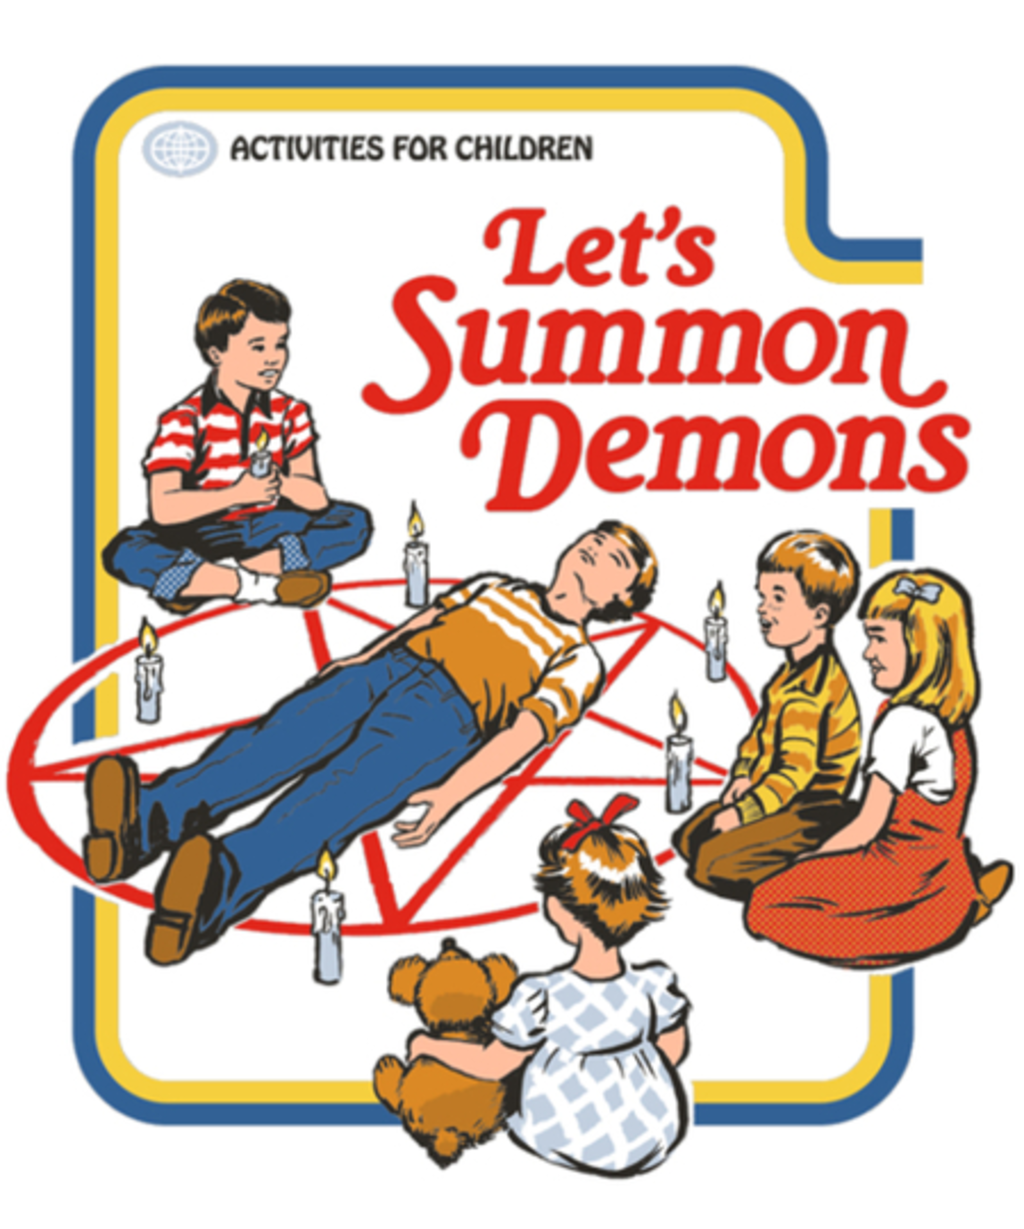 Qwertee: Let's Summon Demons